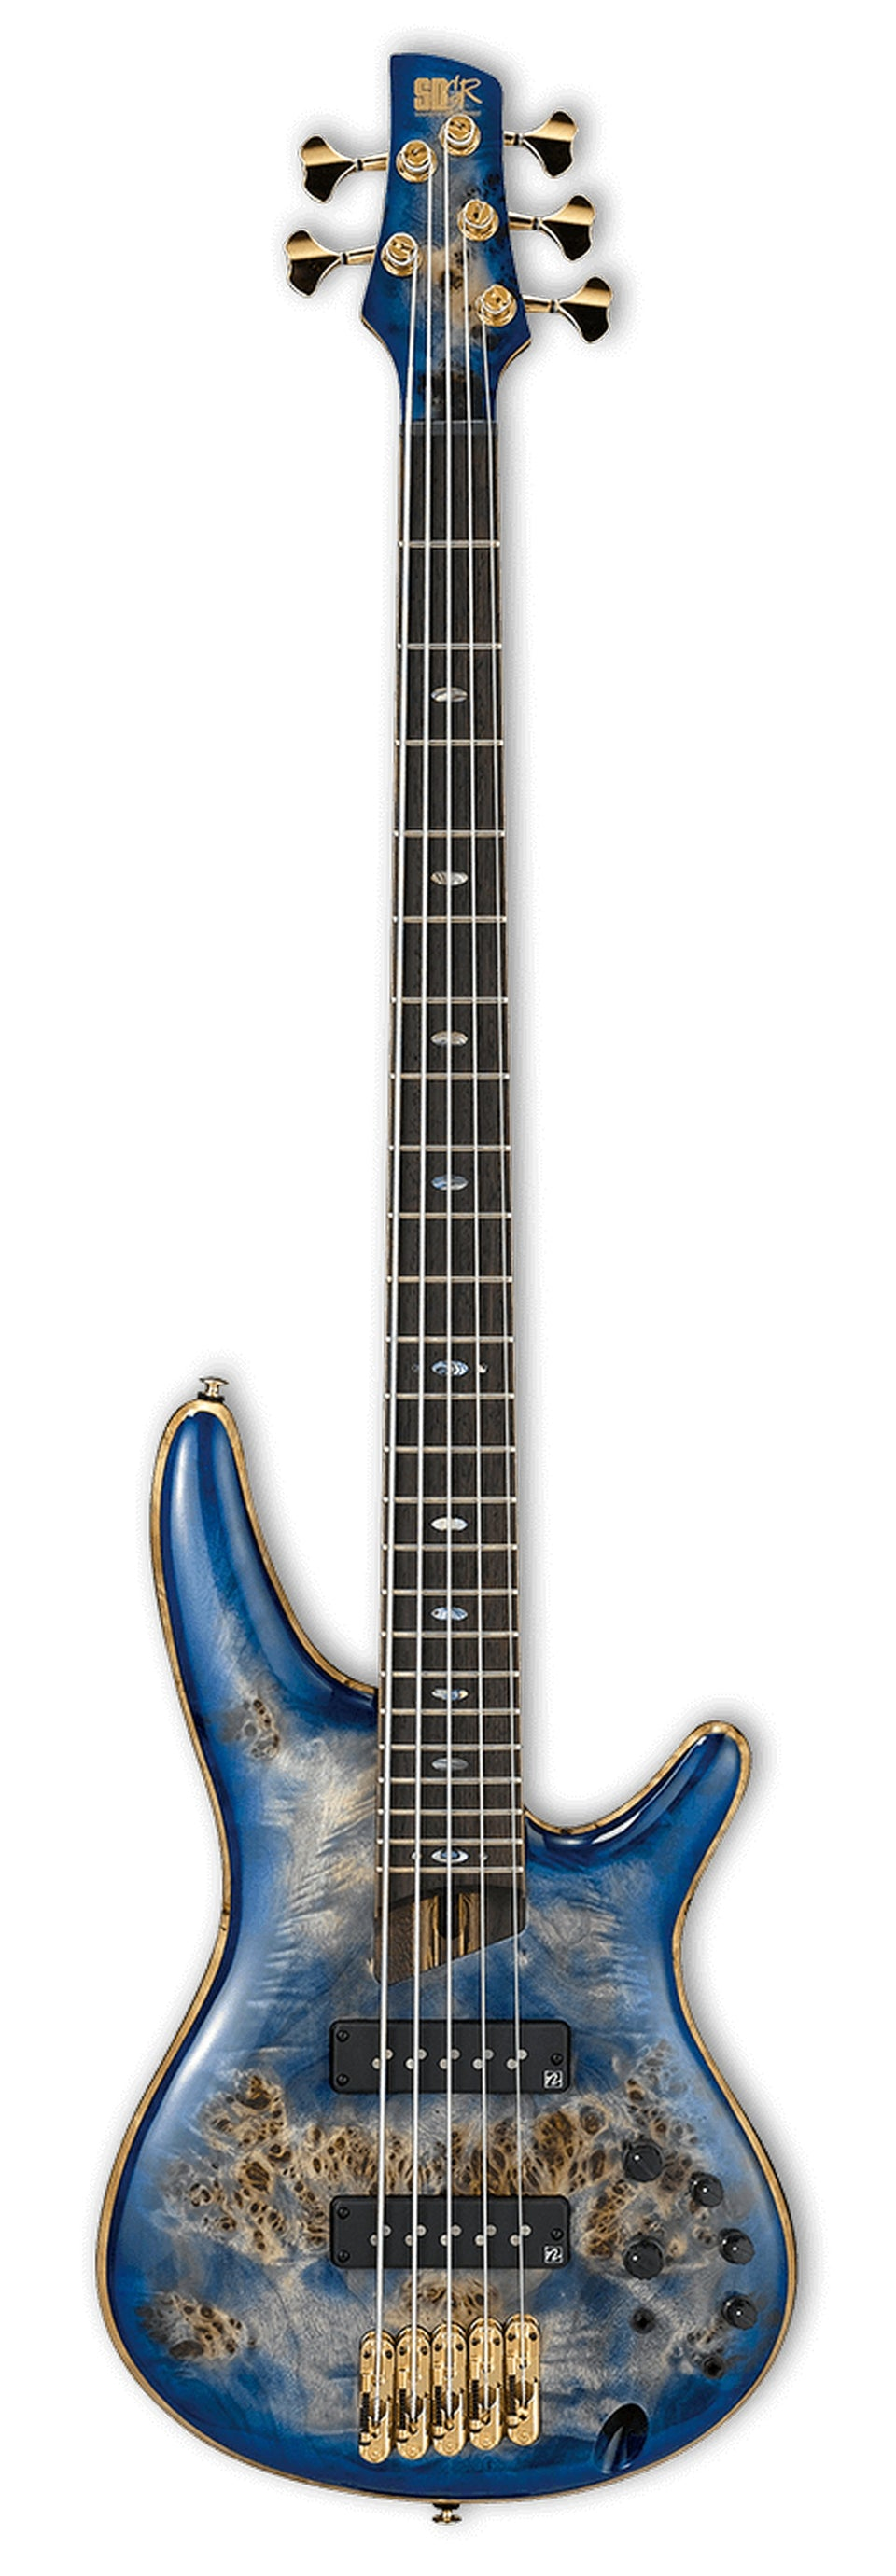 Ibanez SR2605E Premium 5-String Electric Bass - Cerulean Blue Burst